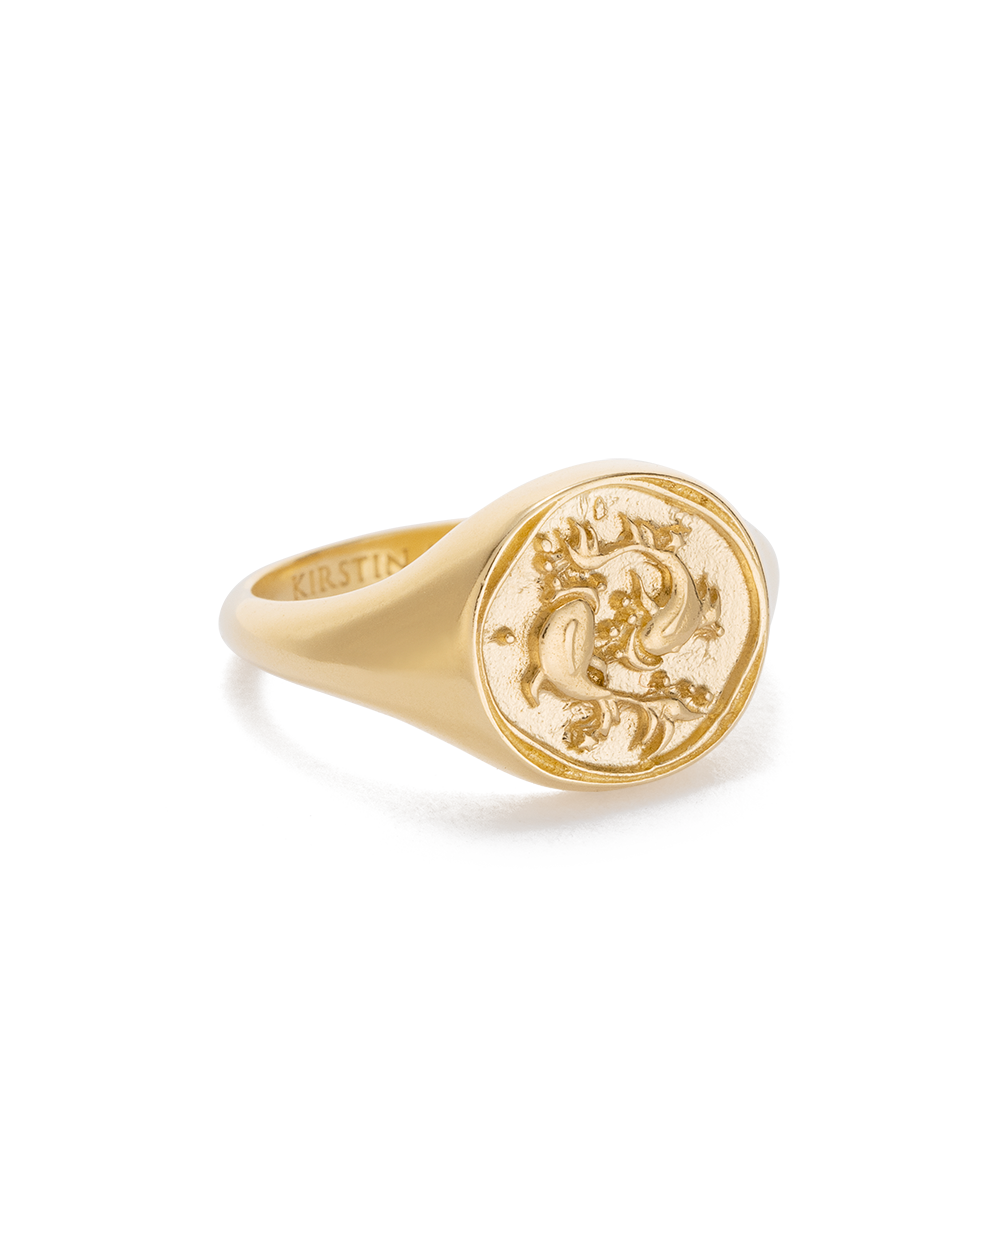 Pisces Zodiac Ring 18K GOLD VERMEIL or STERLING SILVER